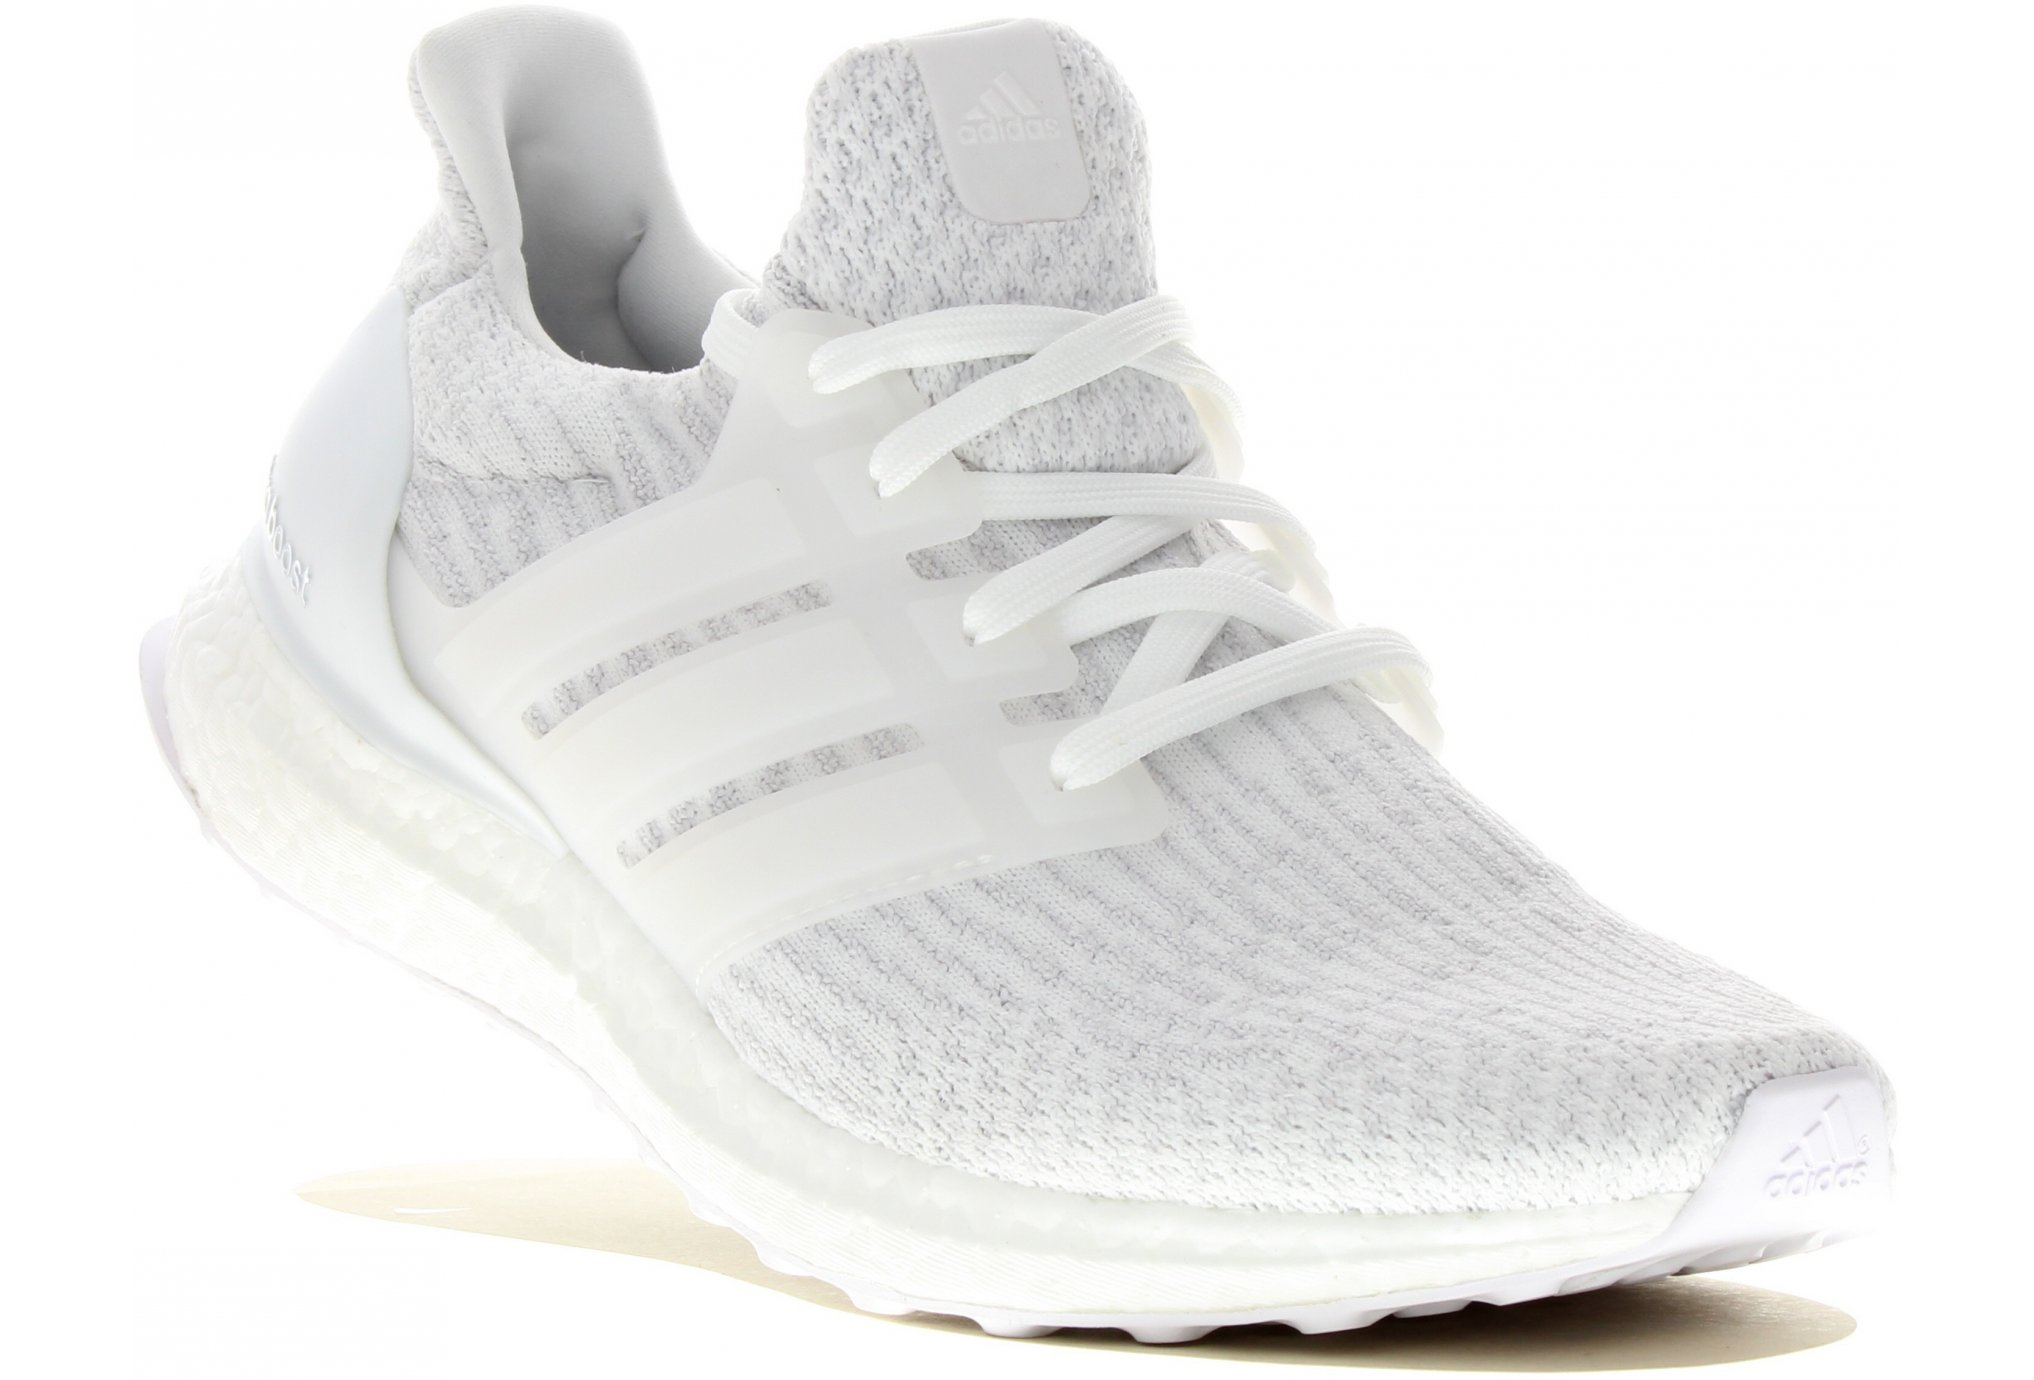 adidas-ultraboost-m-chaussures-homme-172500-1-fz